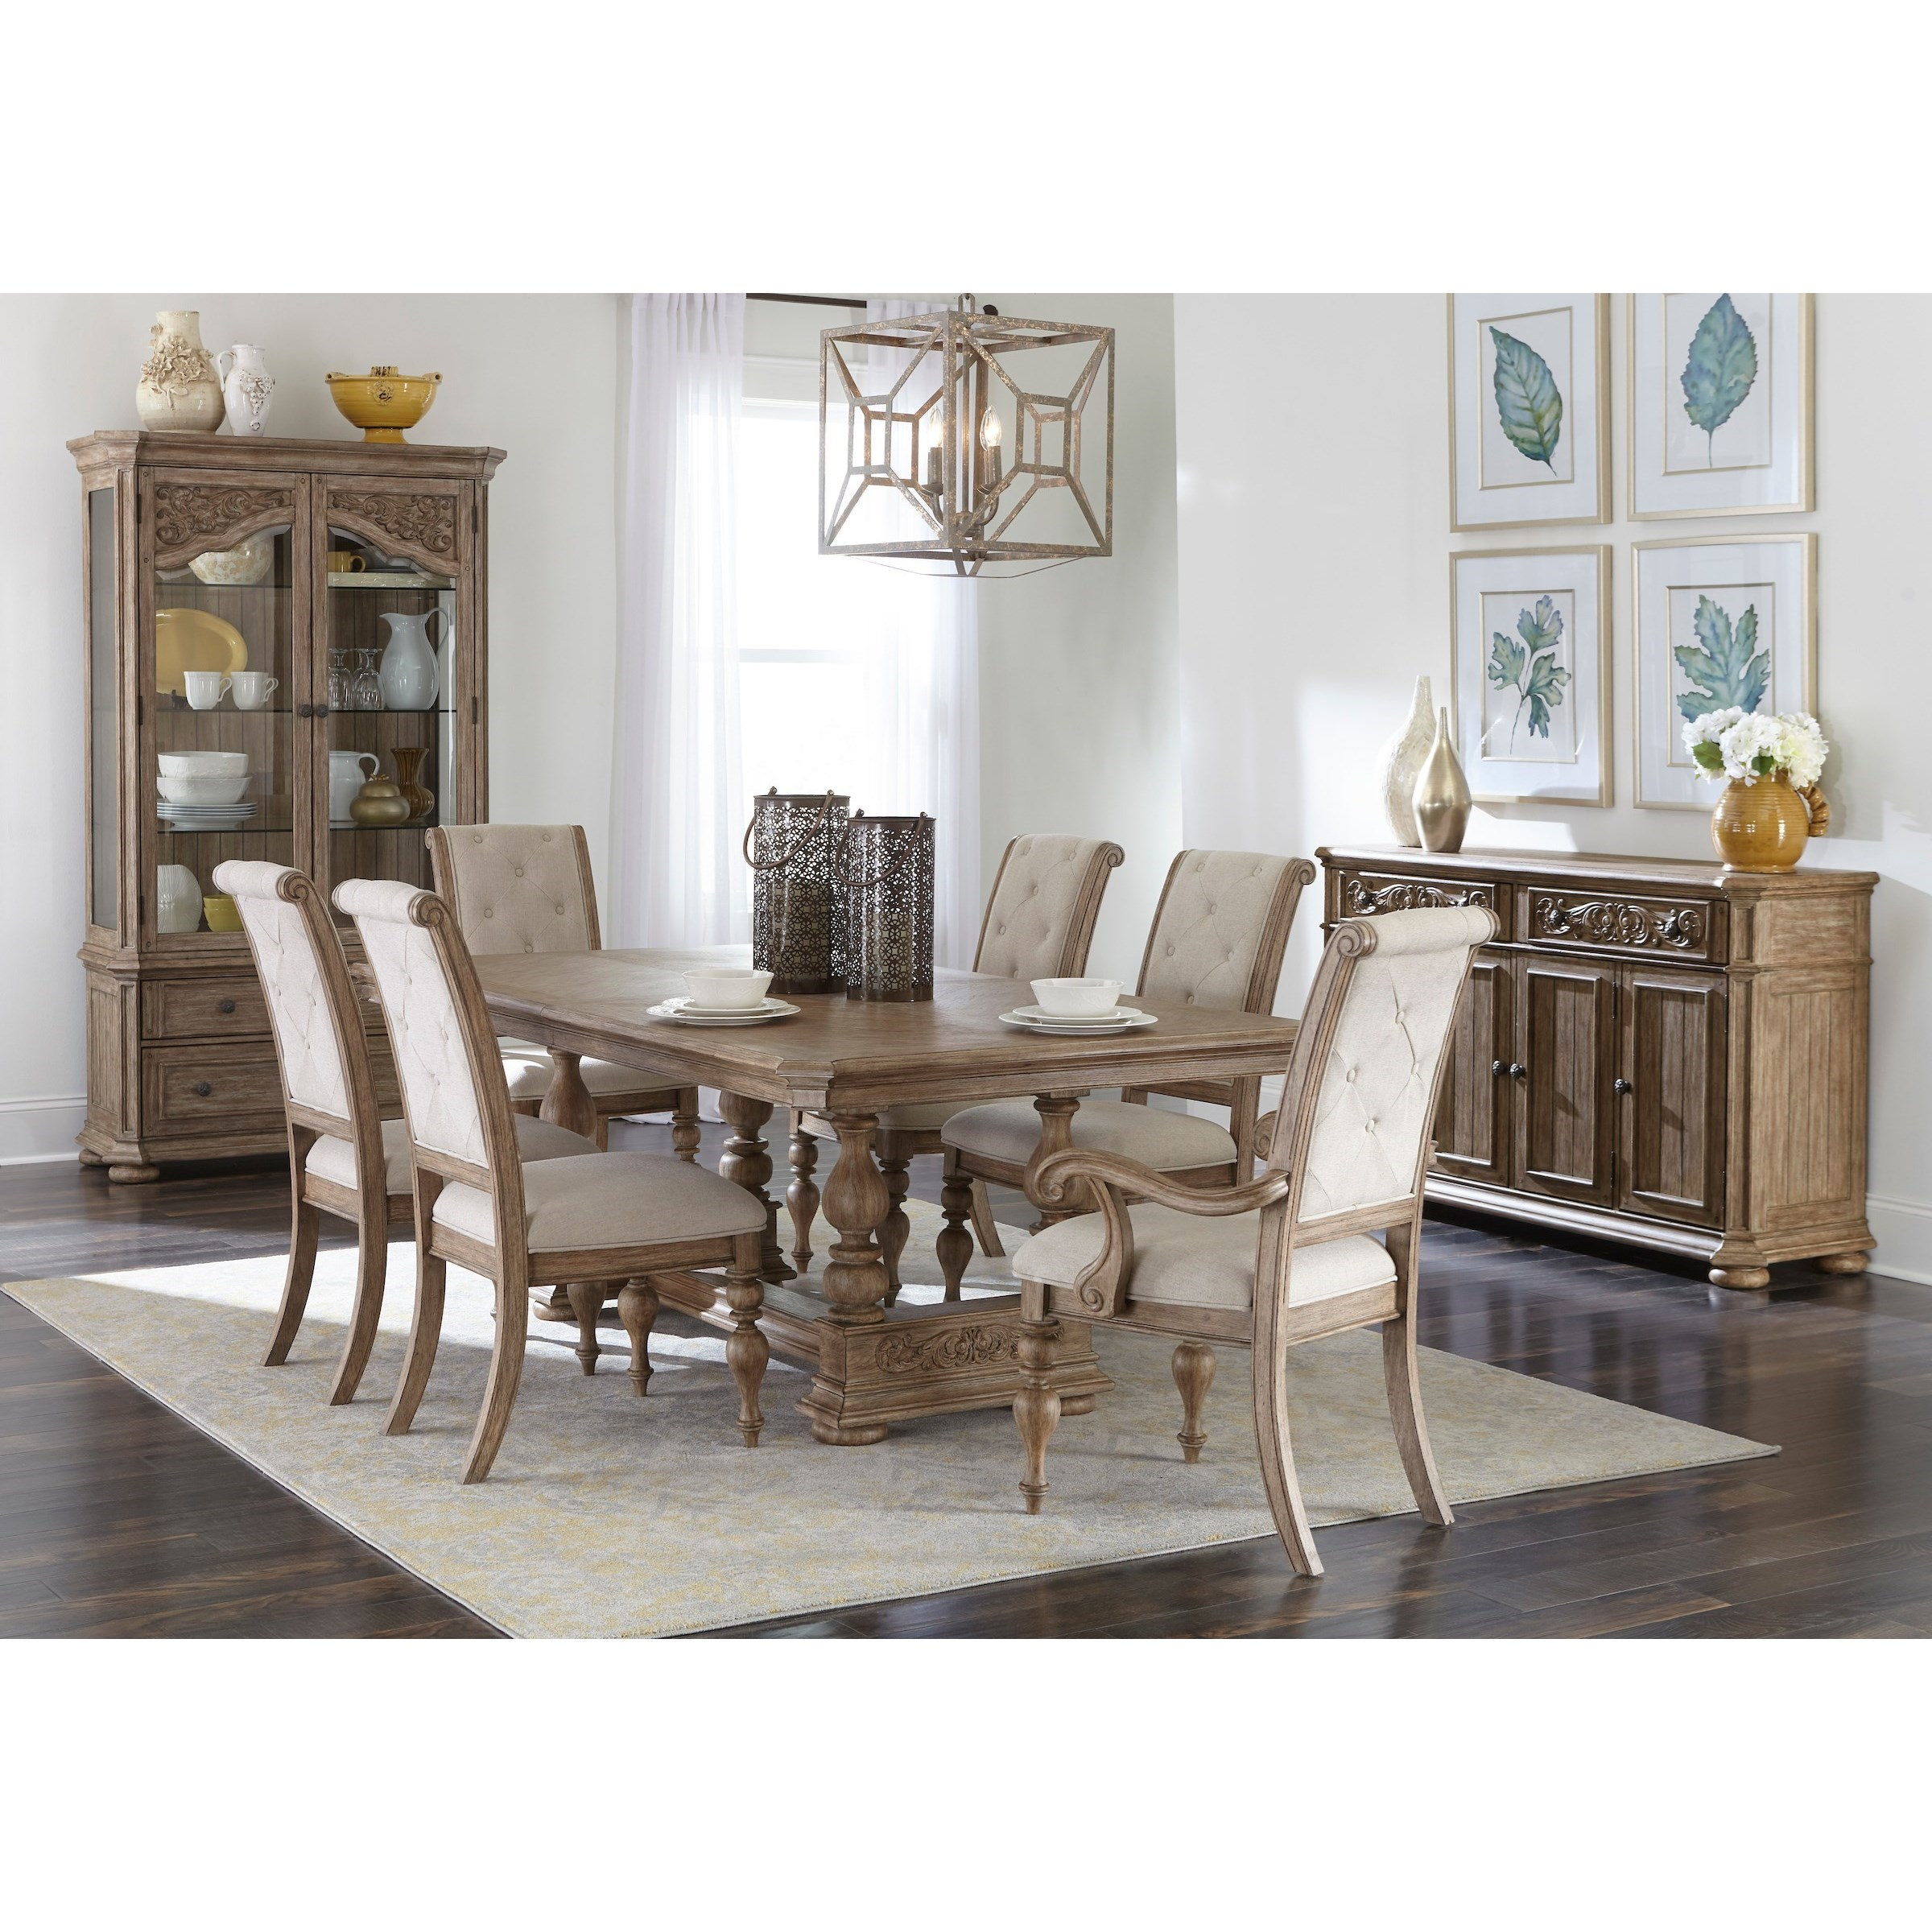 Cardoso Formal Dining Group by Klaussner International at Powell's Furniture and Mattress